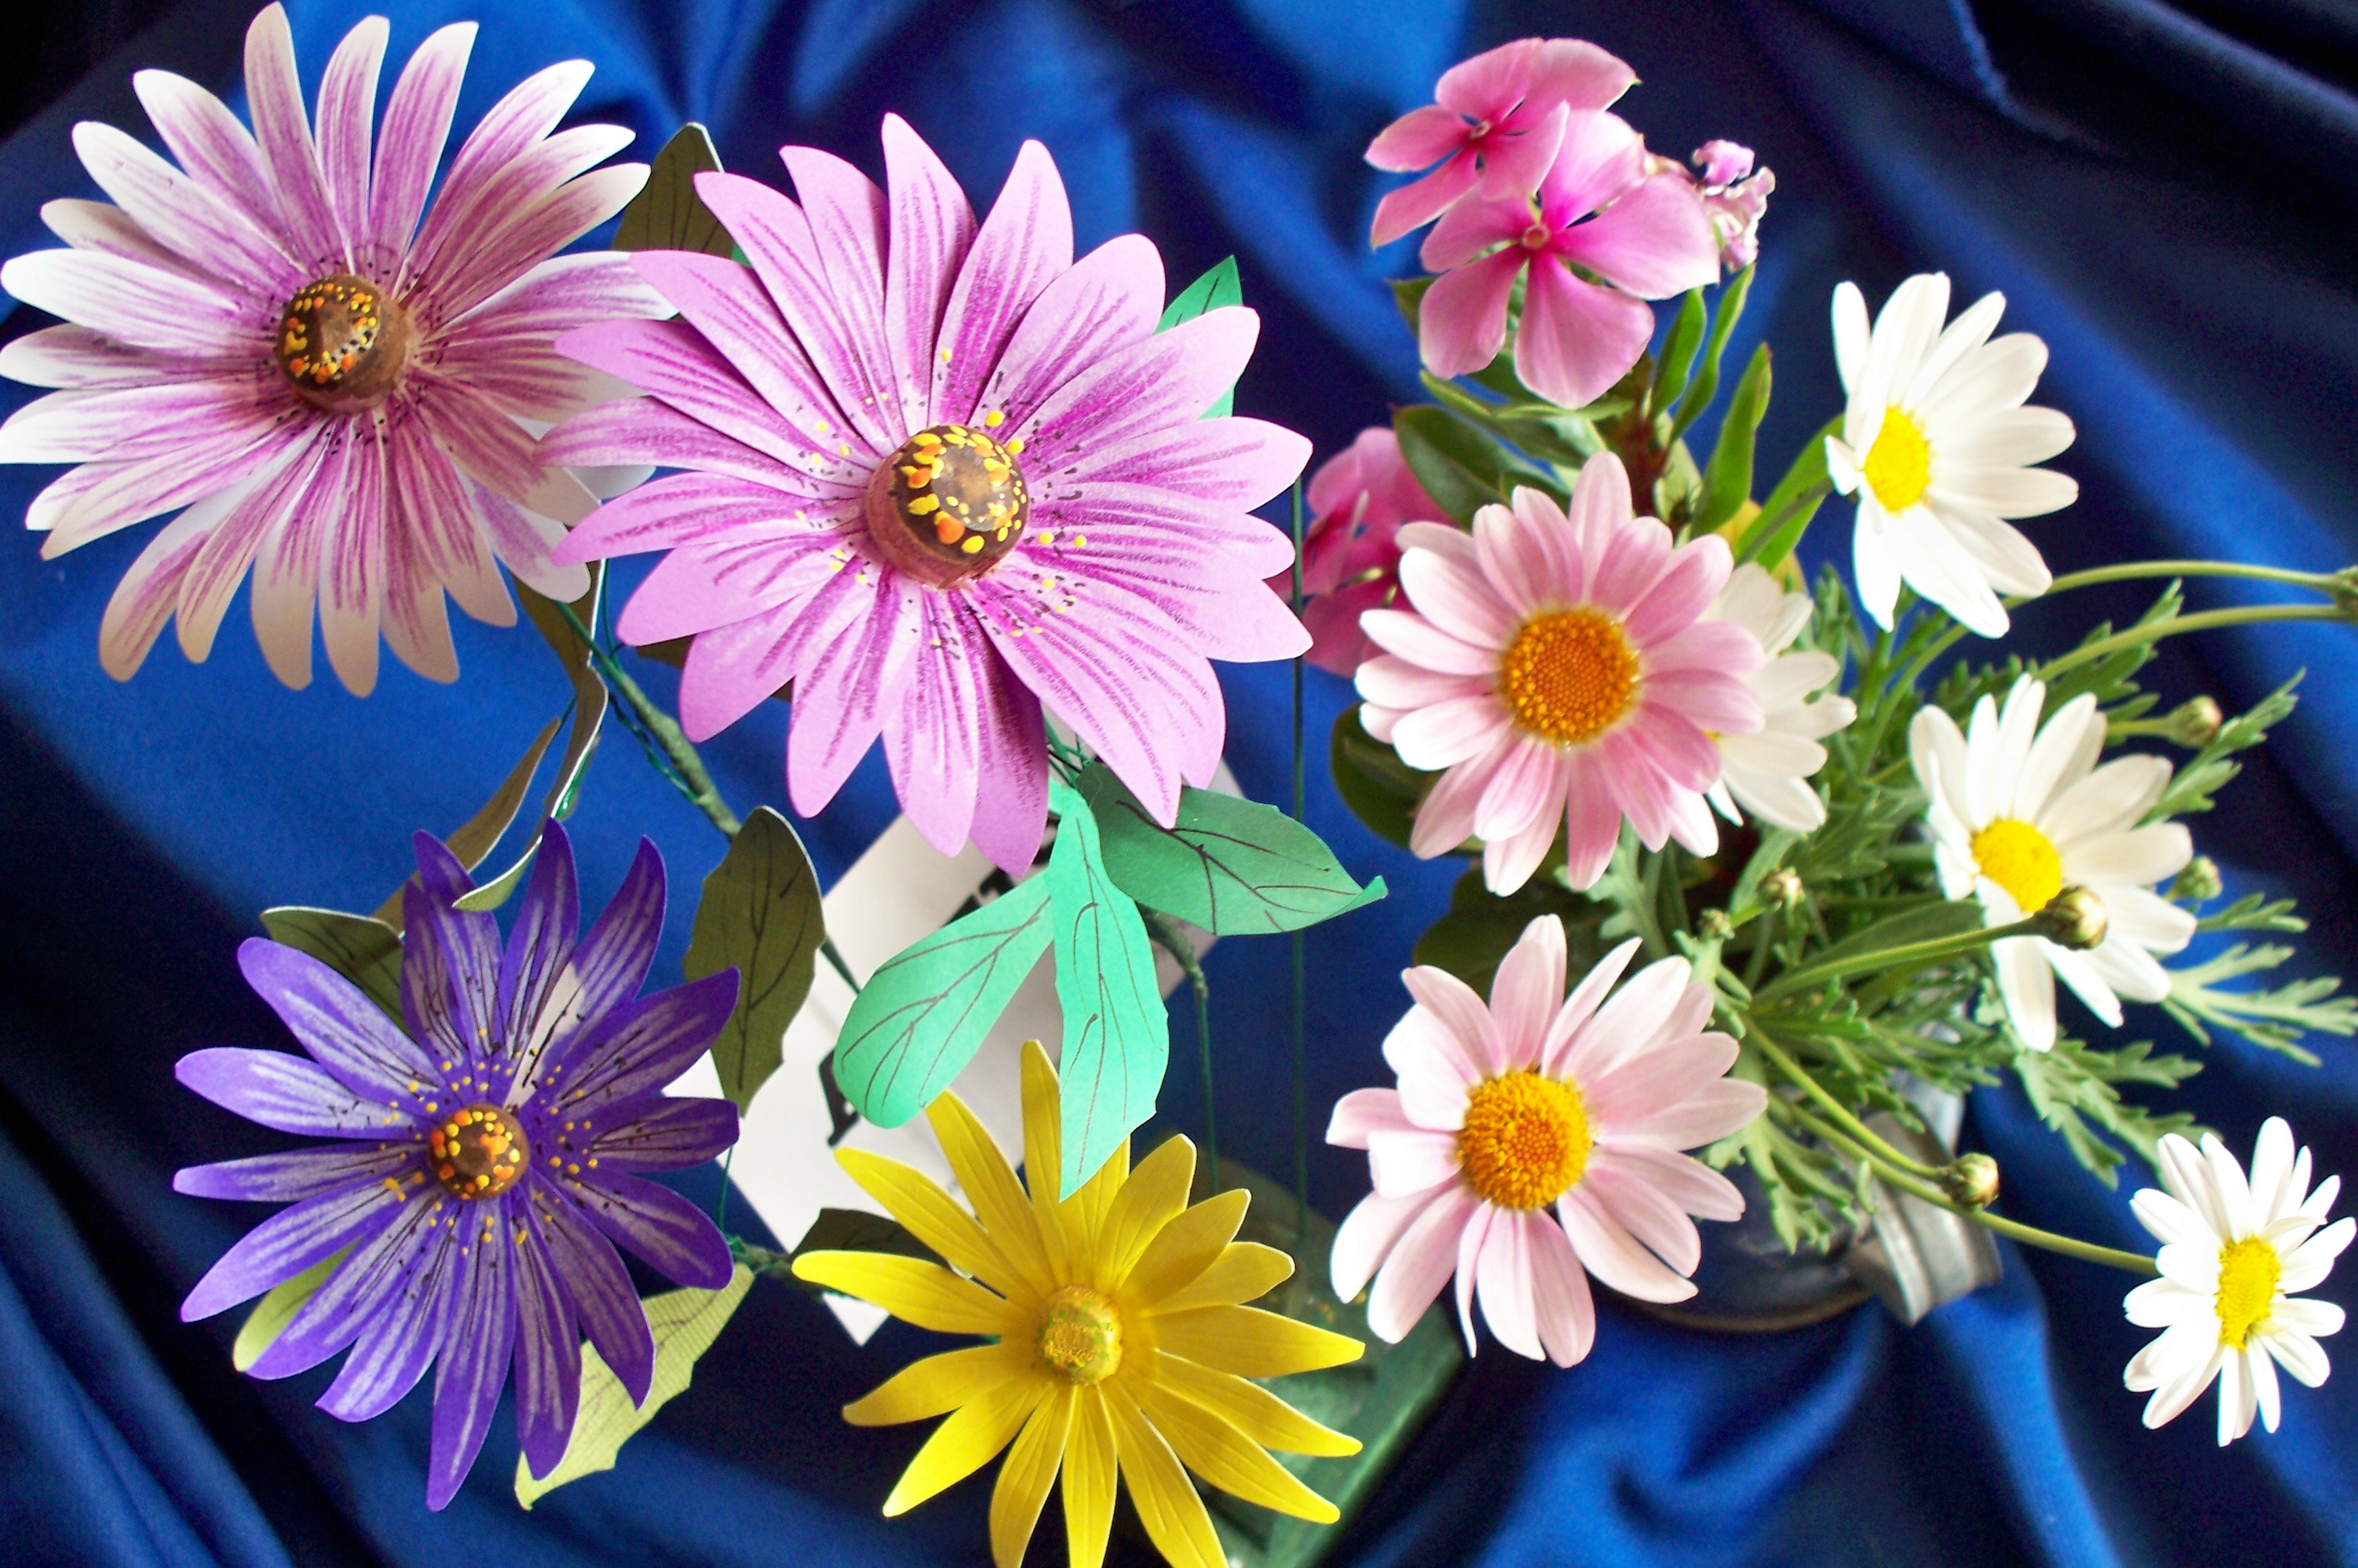 How to make paper daisies 8 steps with pictures picture of how to make paper daisies izmirmasajfo